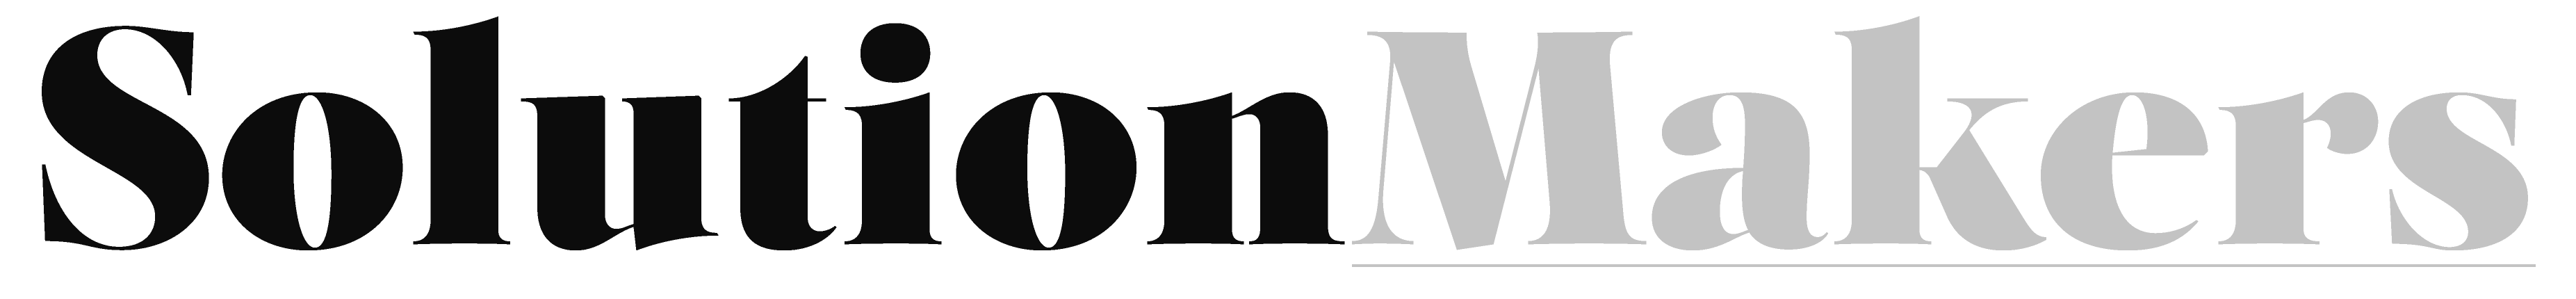 SolutionMakers Logo